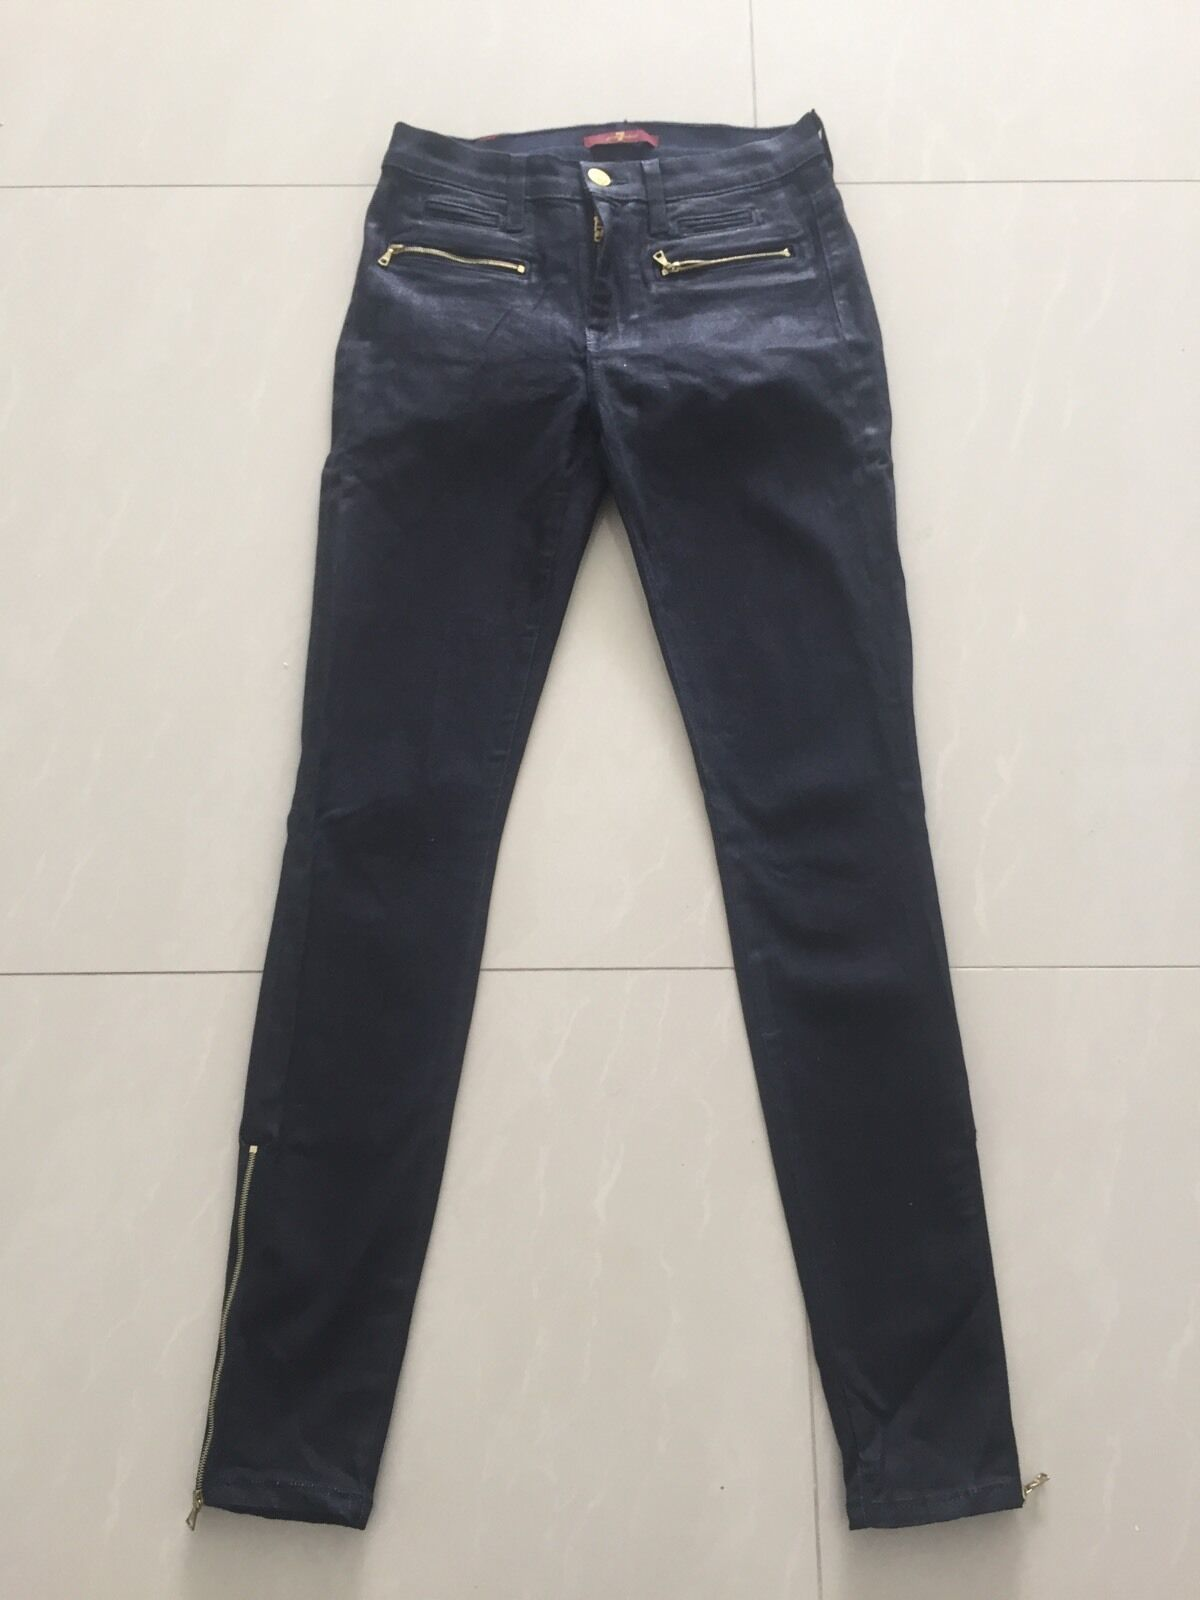 7 For All Mankind Women's Jeans Size 25